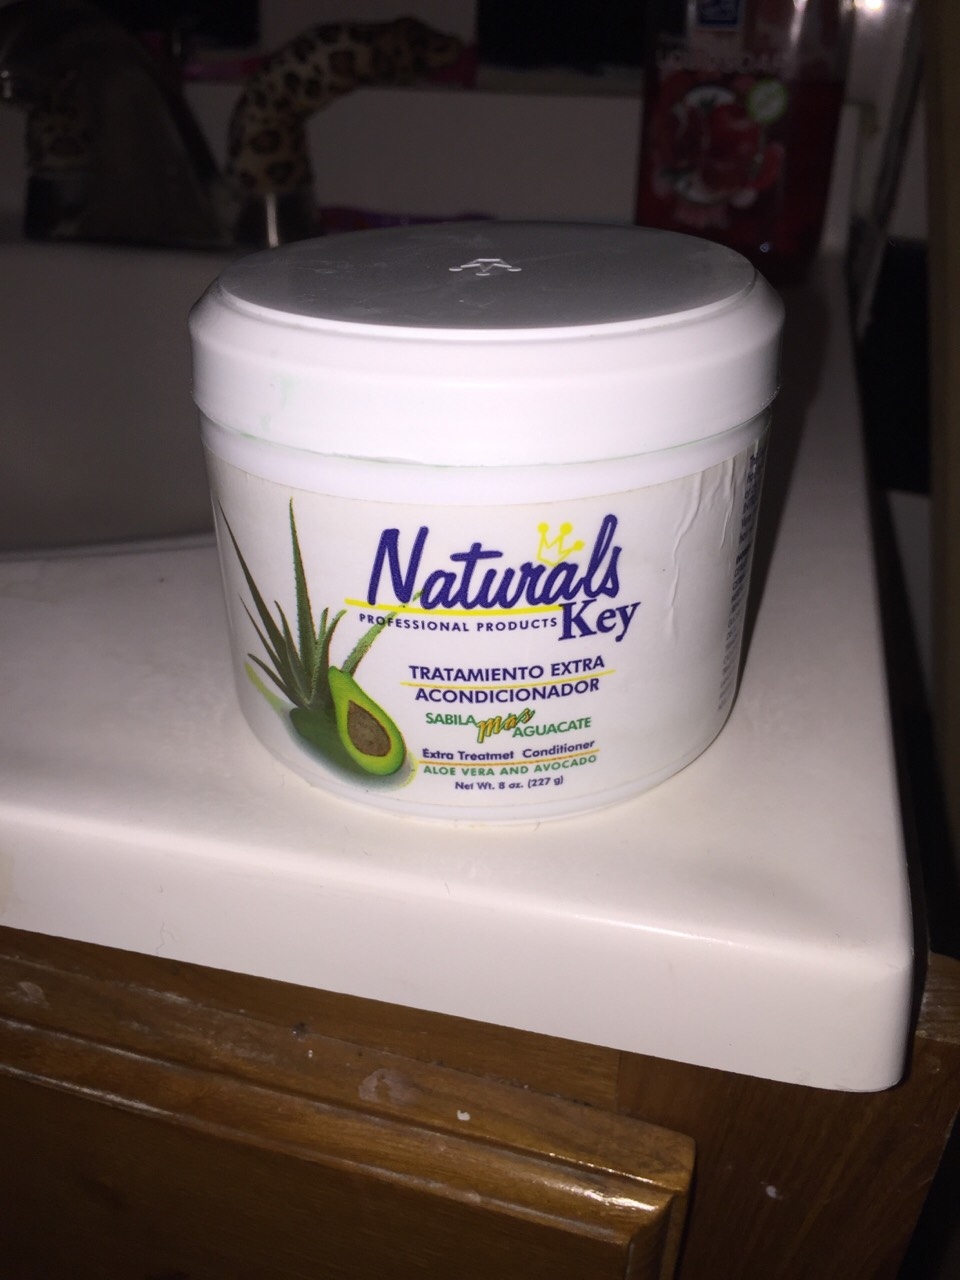 This is this treatment I use for my hair, to maintain it healthy. (Naturals key - aloe Vera and avocado)  - Condition! -- Don't ignore the conditioner. It's really helpful and makes your hair feel good after dyeing it. Give your hair some TLC after applying all those chemical